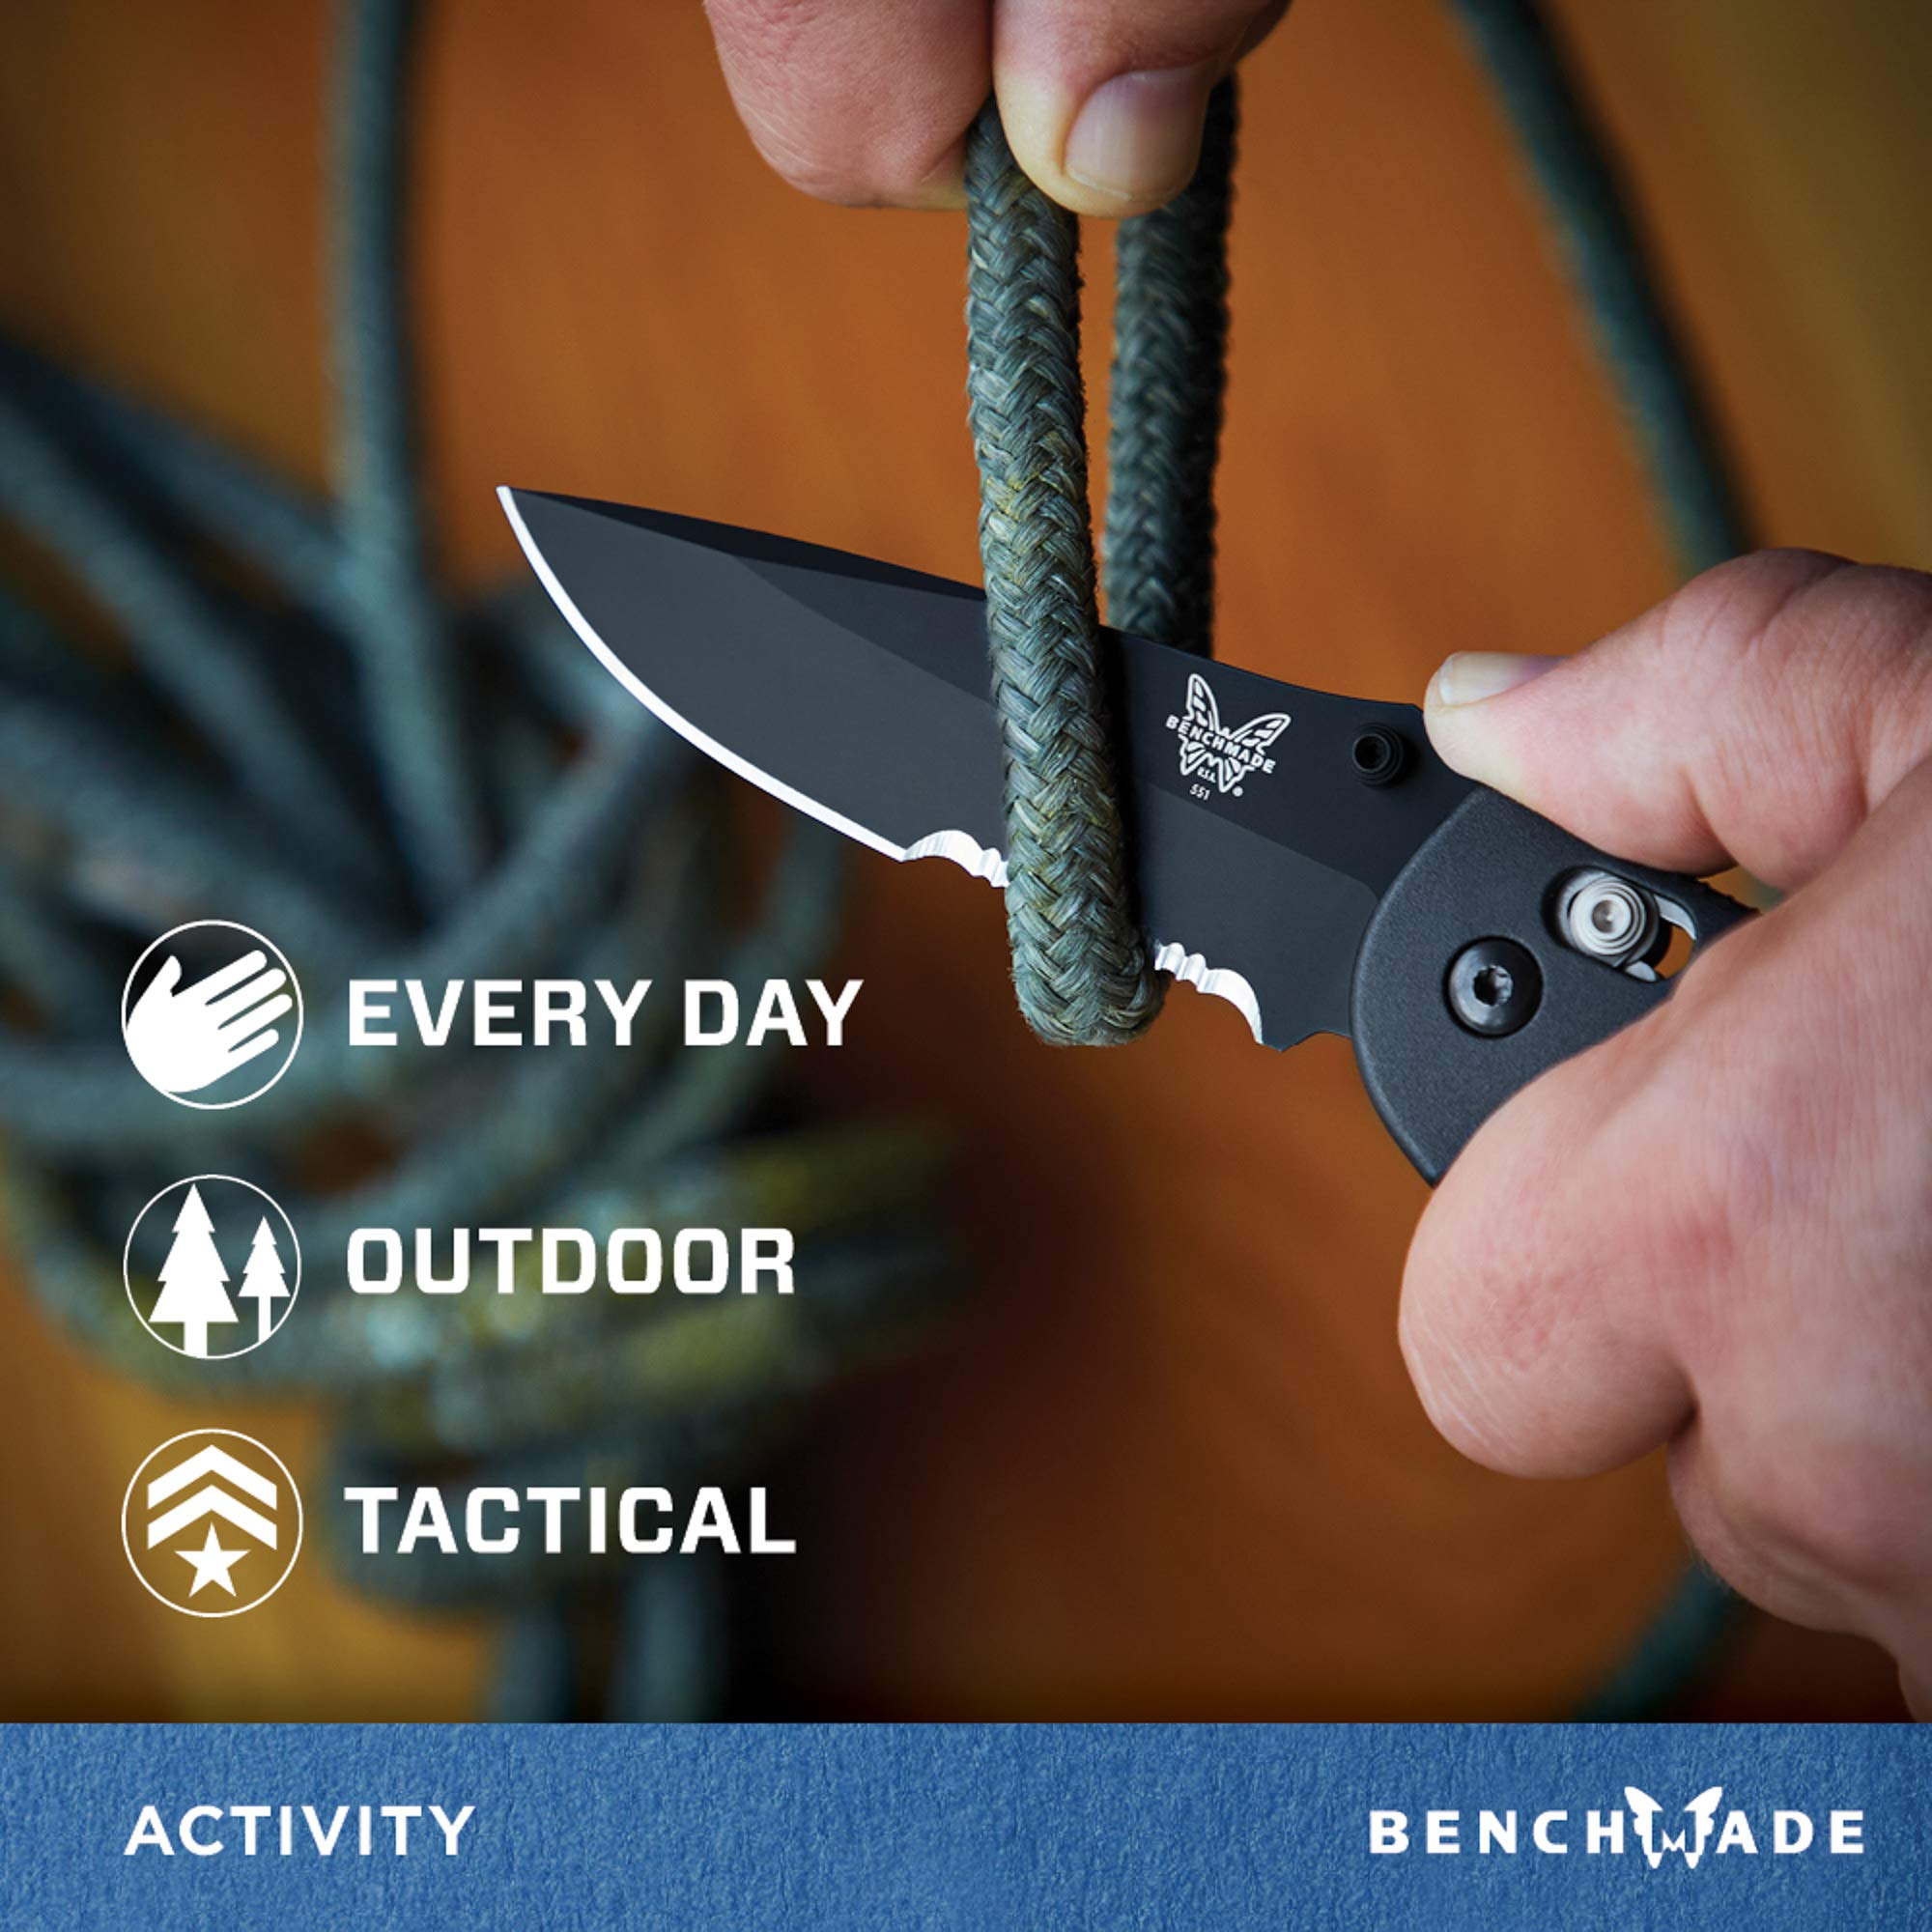 Benchmade - Griptilian 551 Knife with CPM-S30V Steel, Drop-Point Blade, Serrated Edge, Coated Finish, Black Handle by Benchmade (Image #4)